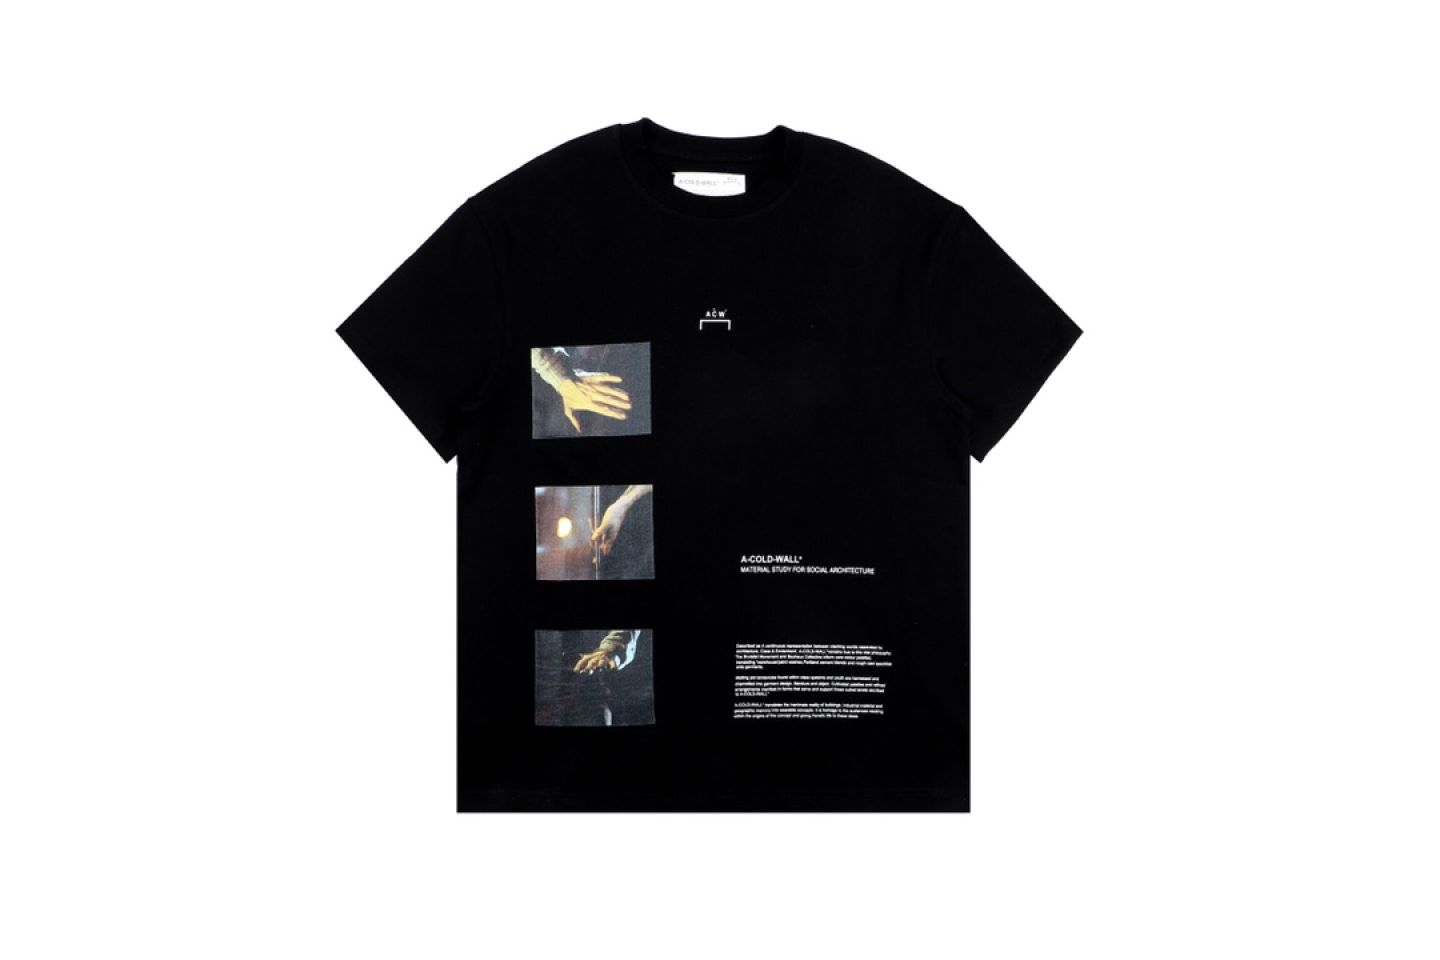 Shirt A-COLD-WALL cold wall oil painting photo short sleeve black 1 a_cold_wall_cold_wall_oil_painting_photo_short_sleeve_black__1